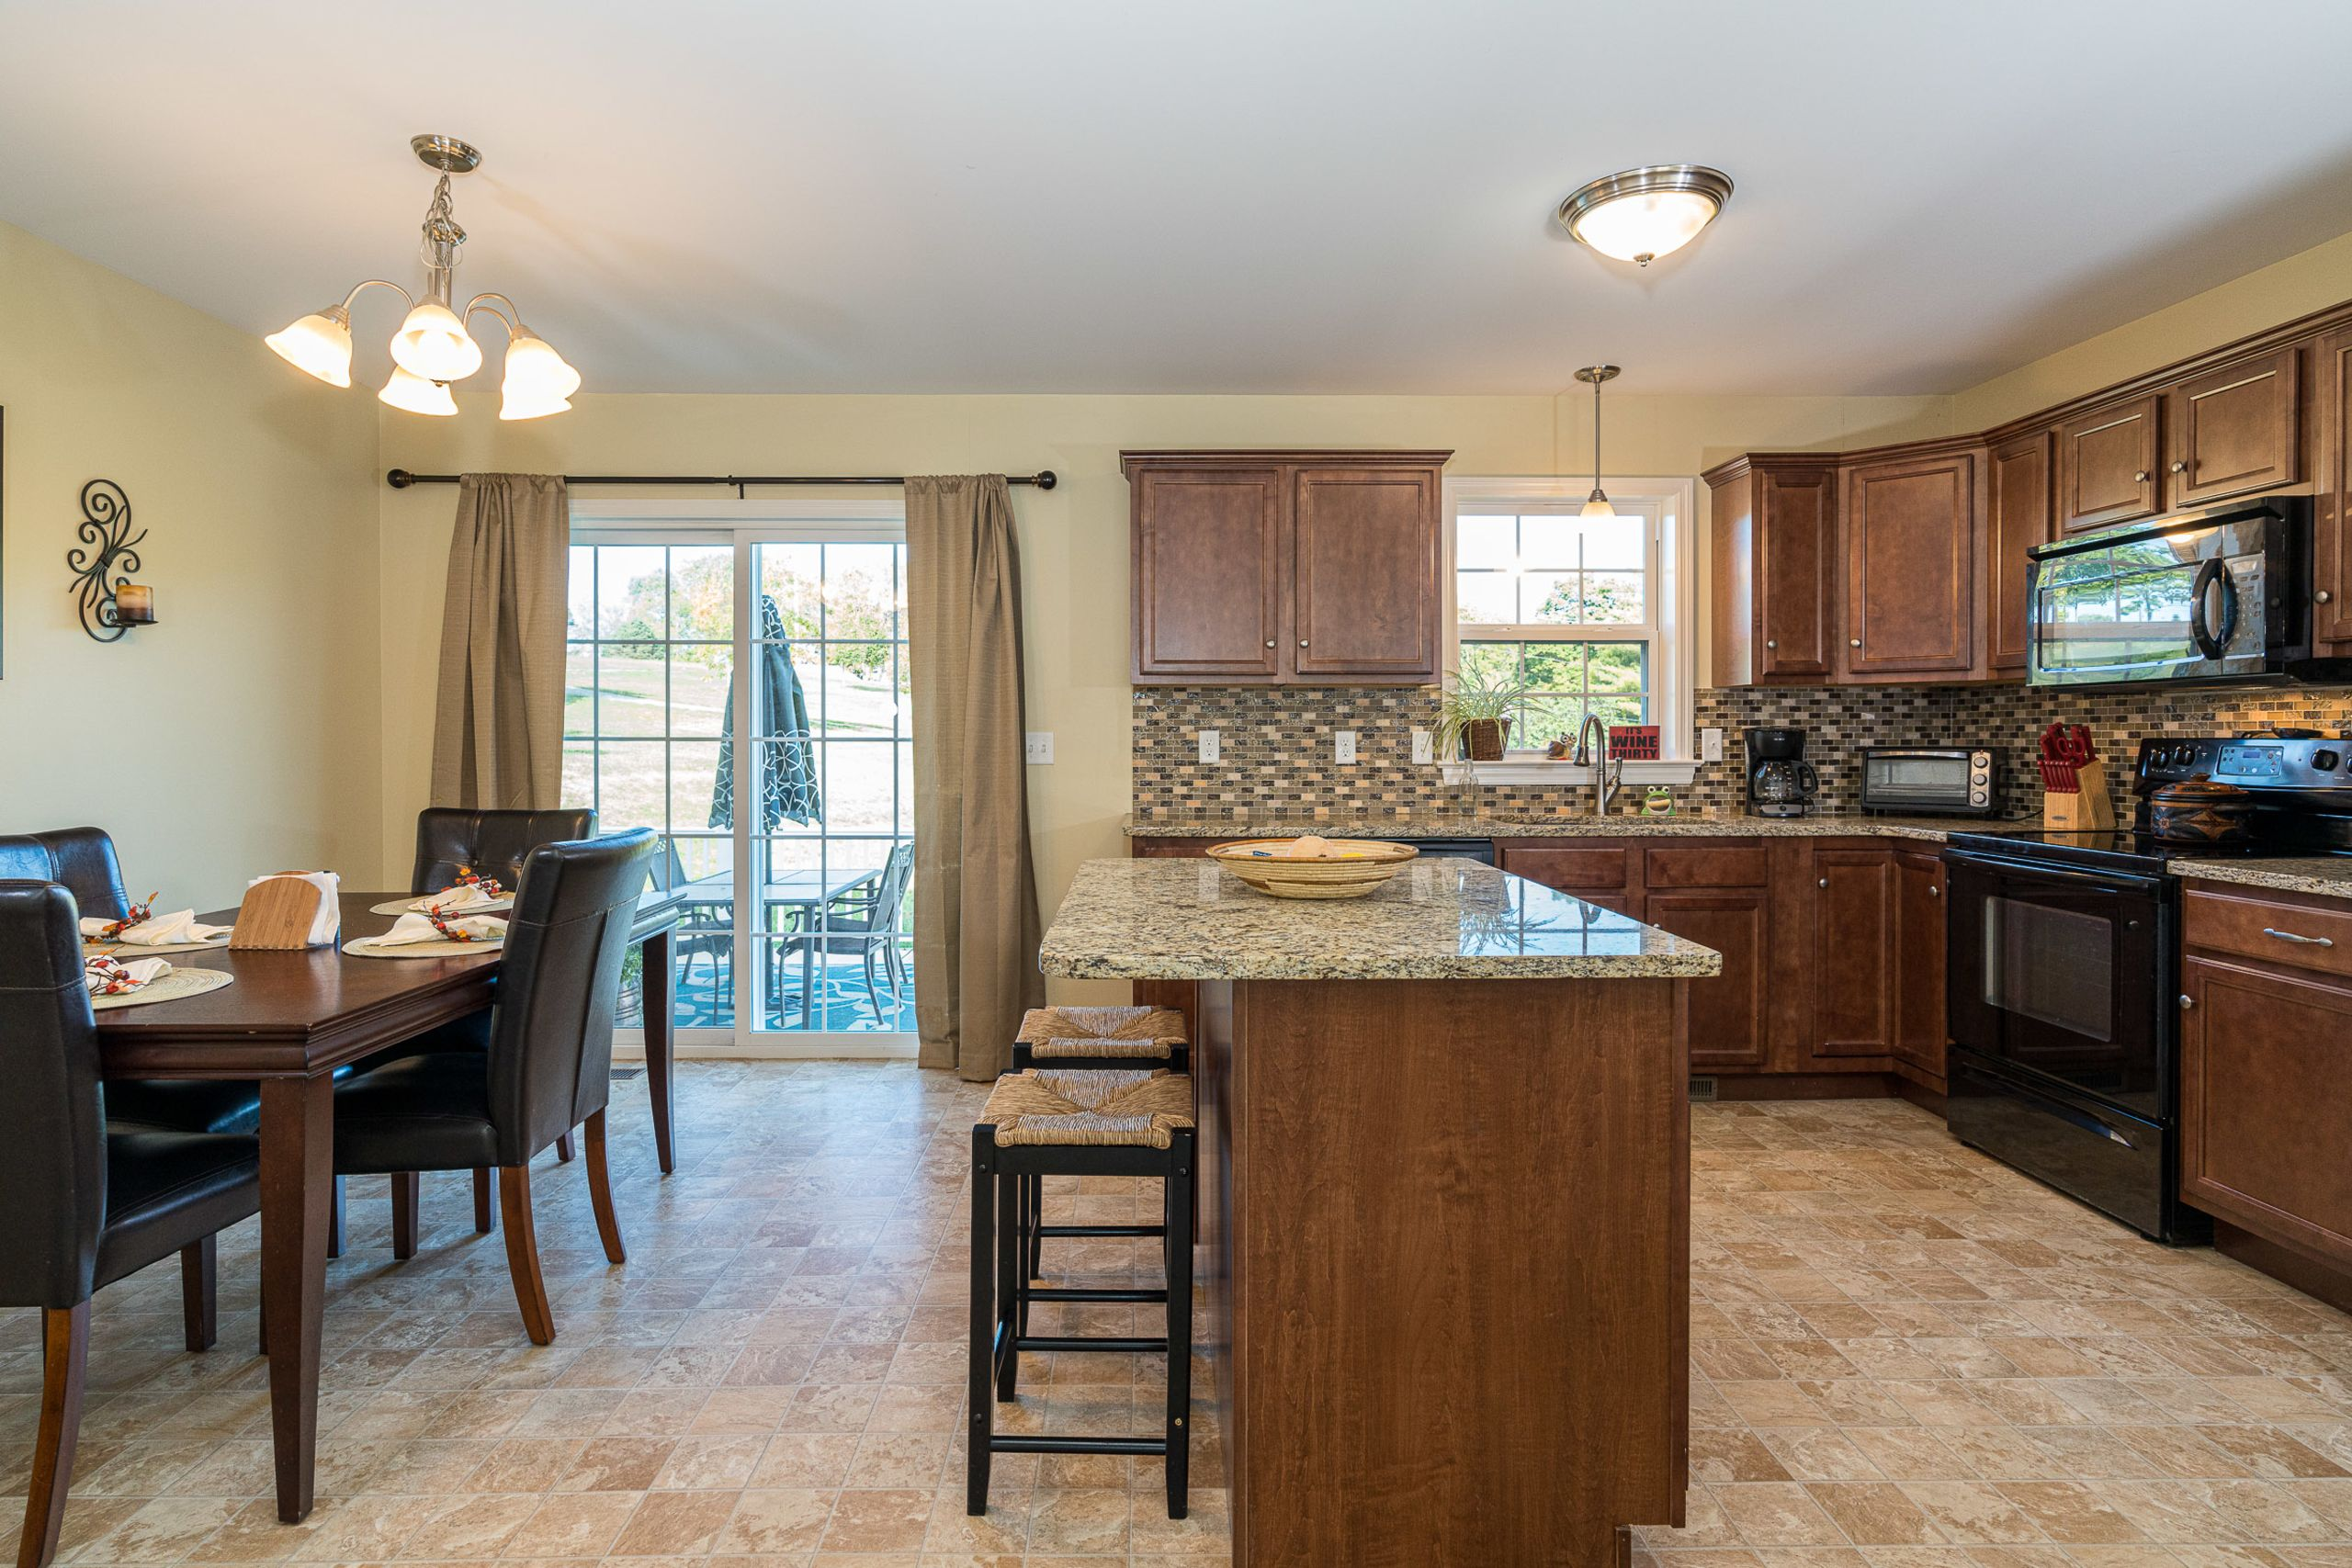 Open layout kitchen with granite counter tops